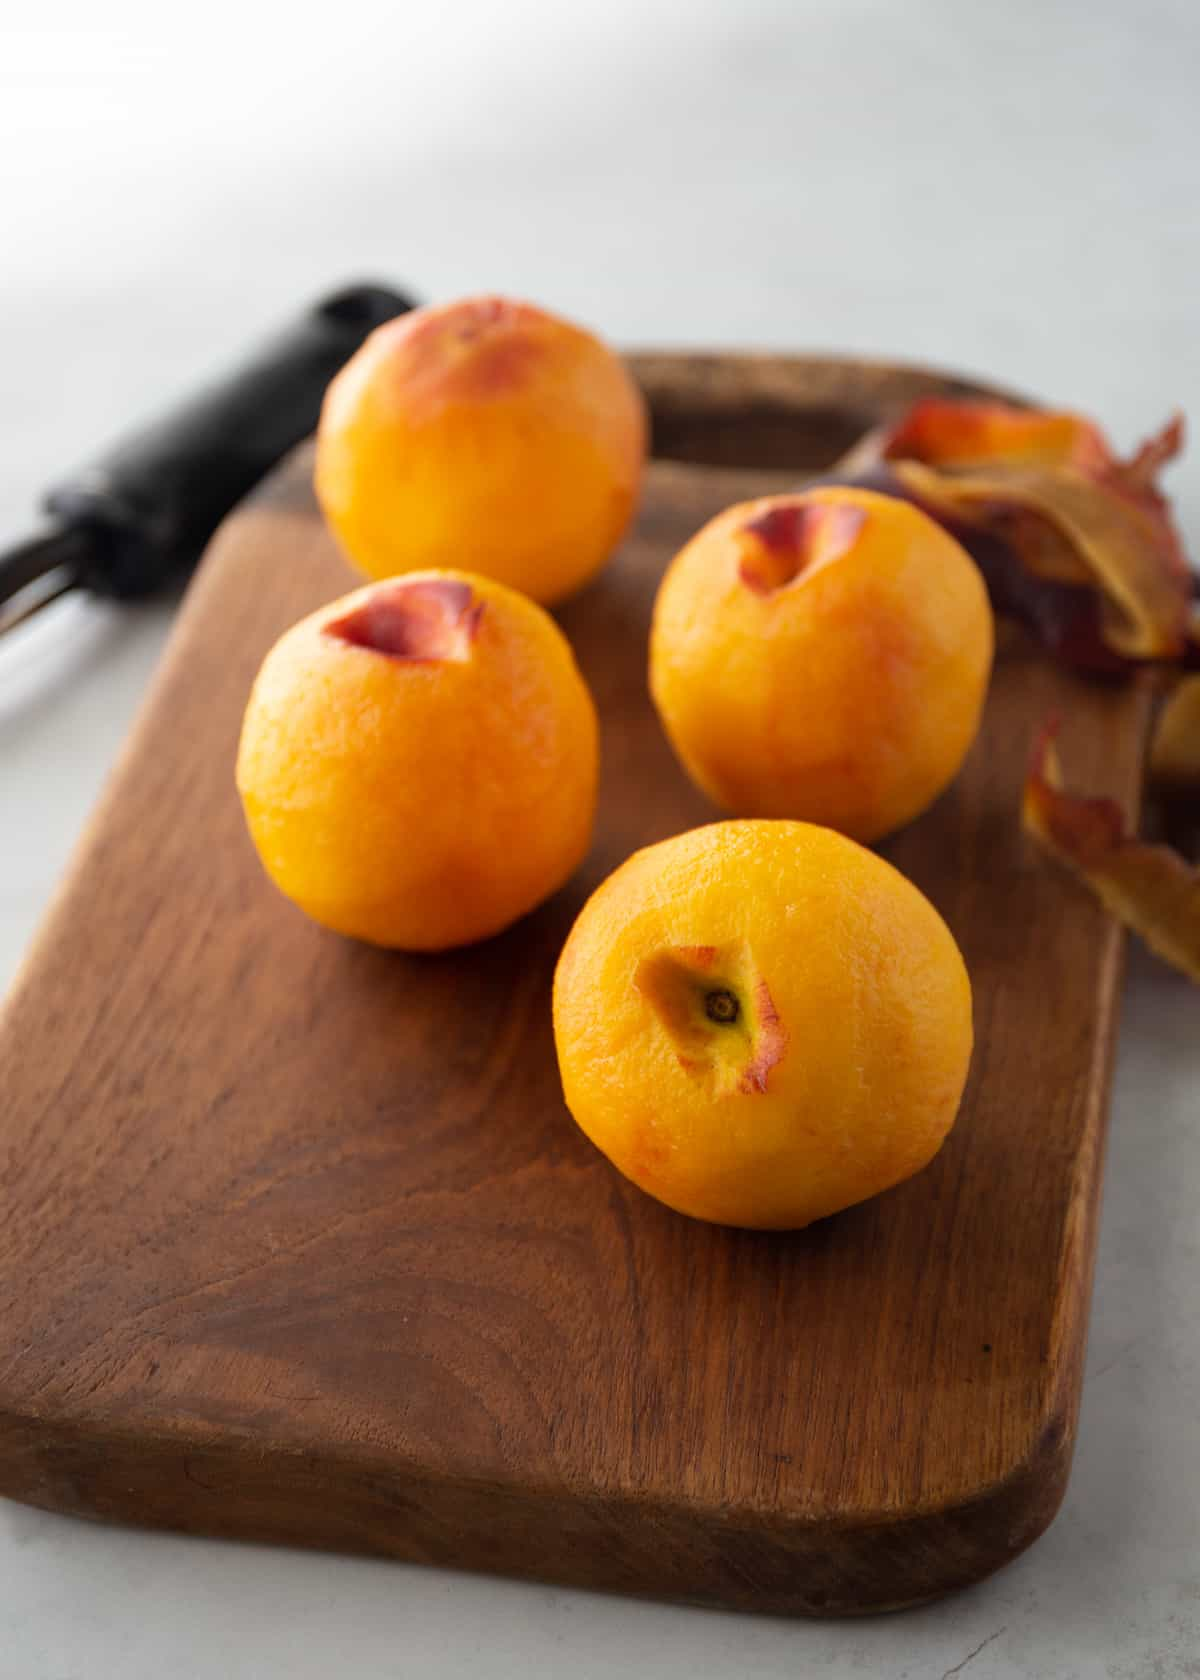 peaches on a wooden cutting board